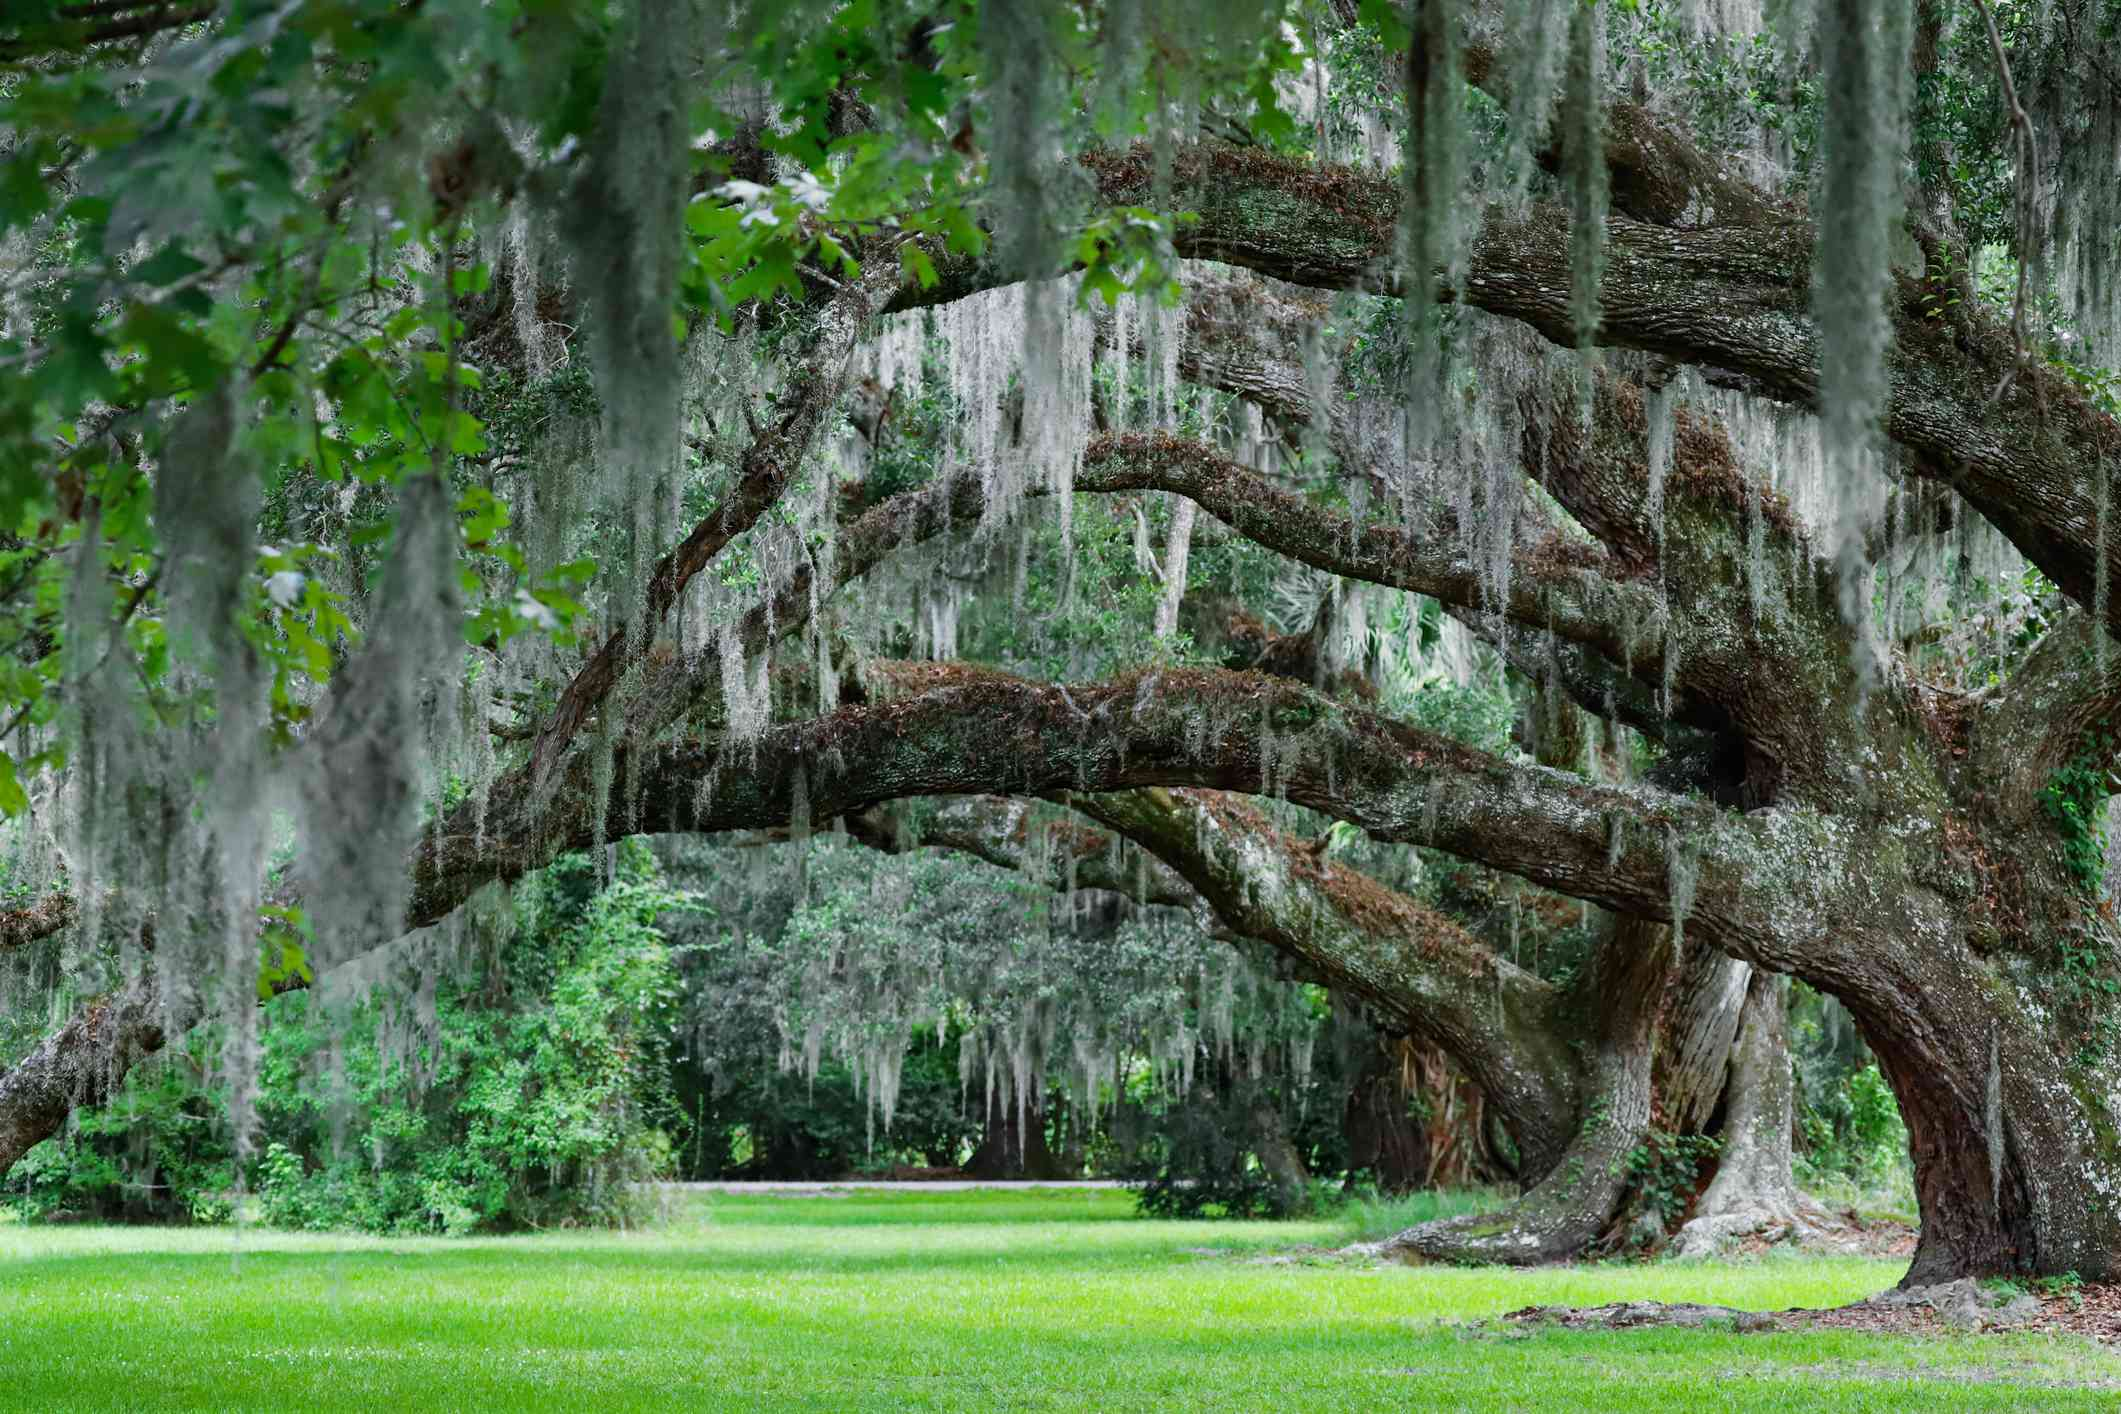 Several Live Oak trees in a row with moss hanging off branches.